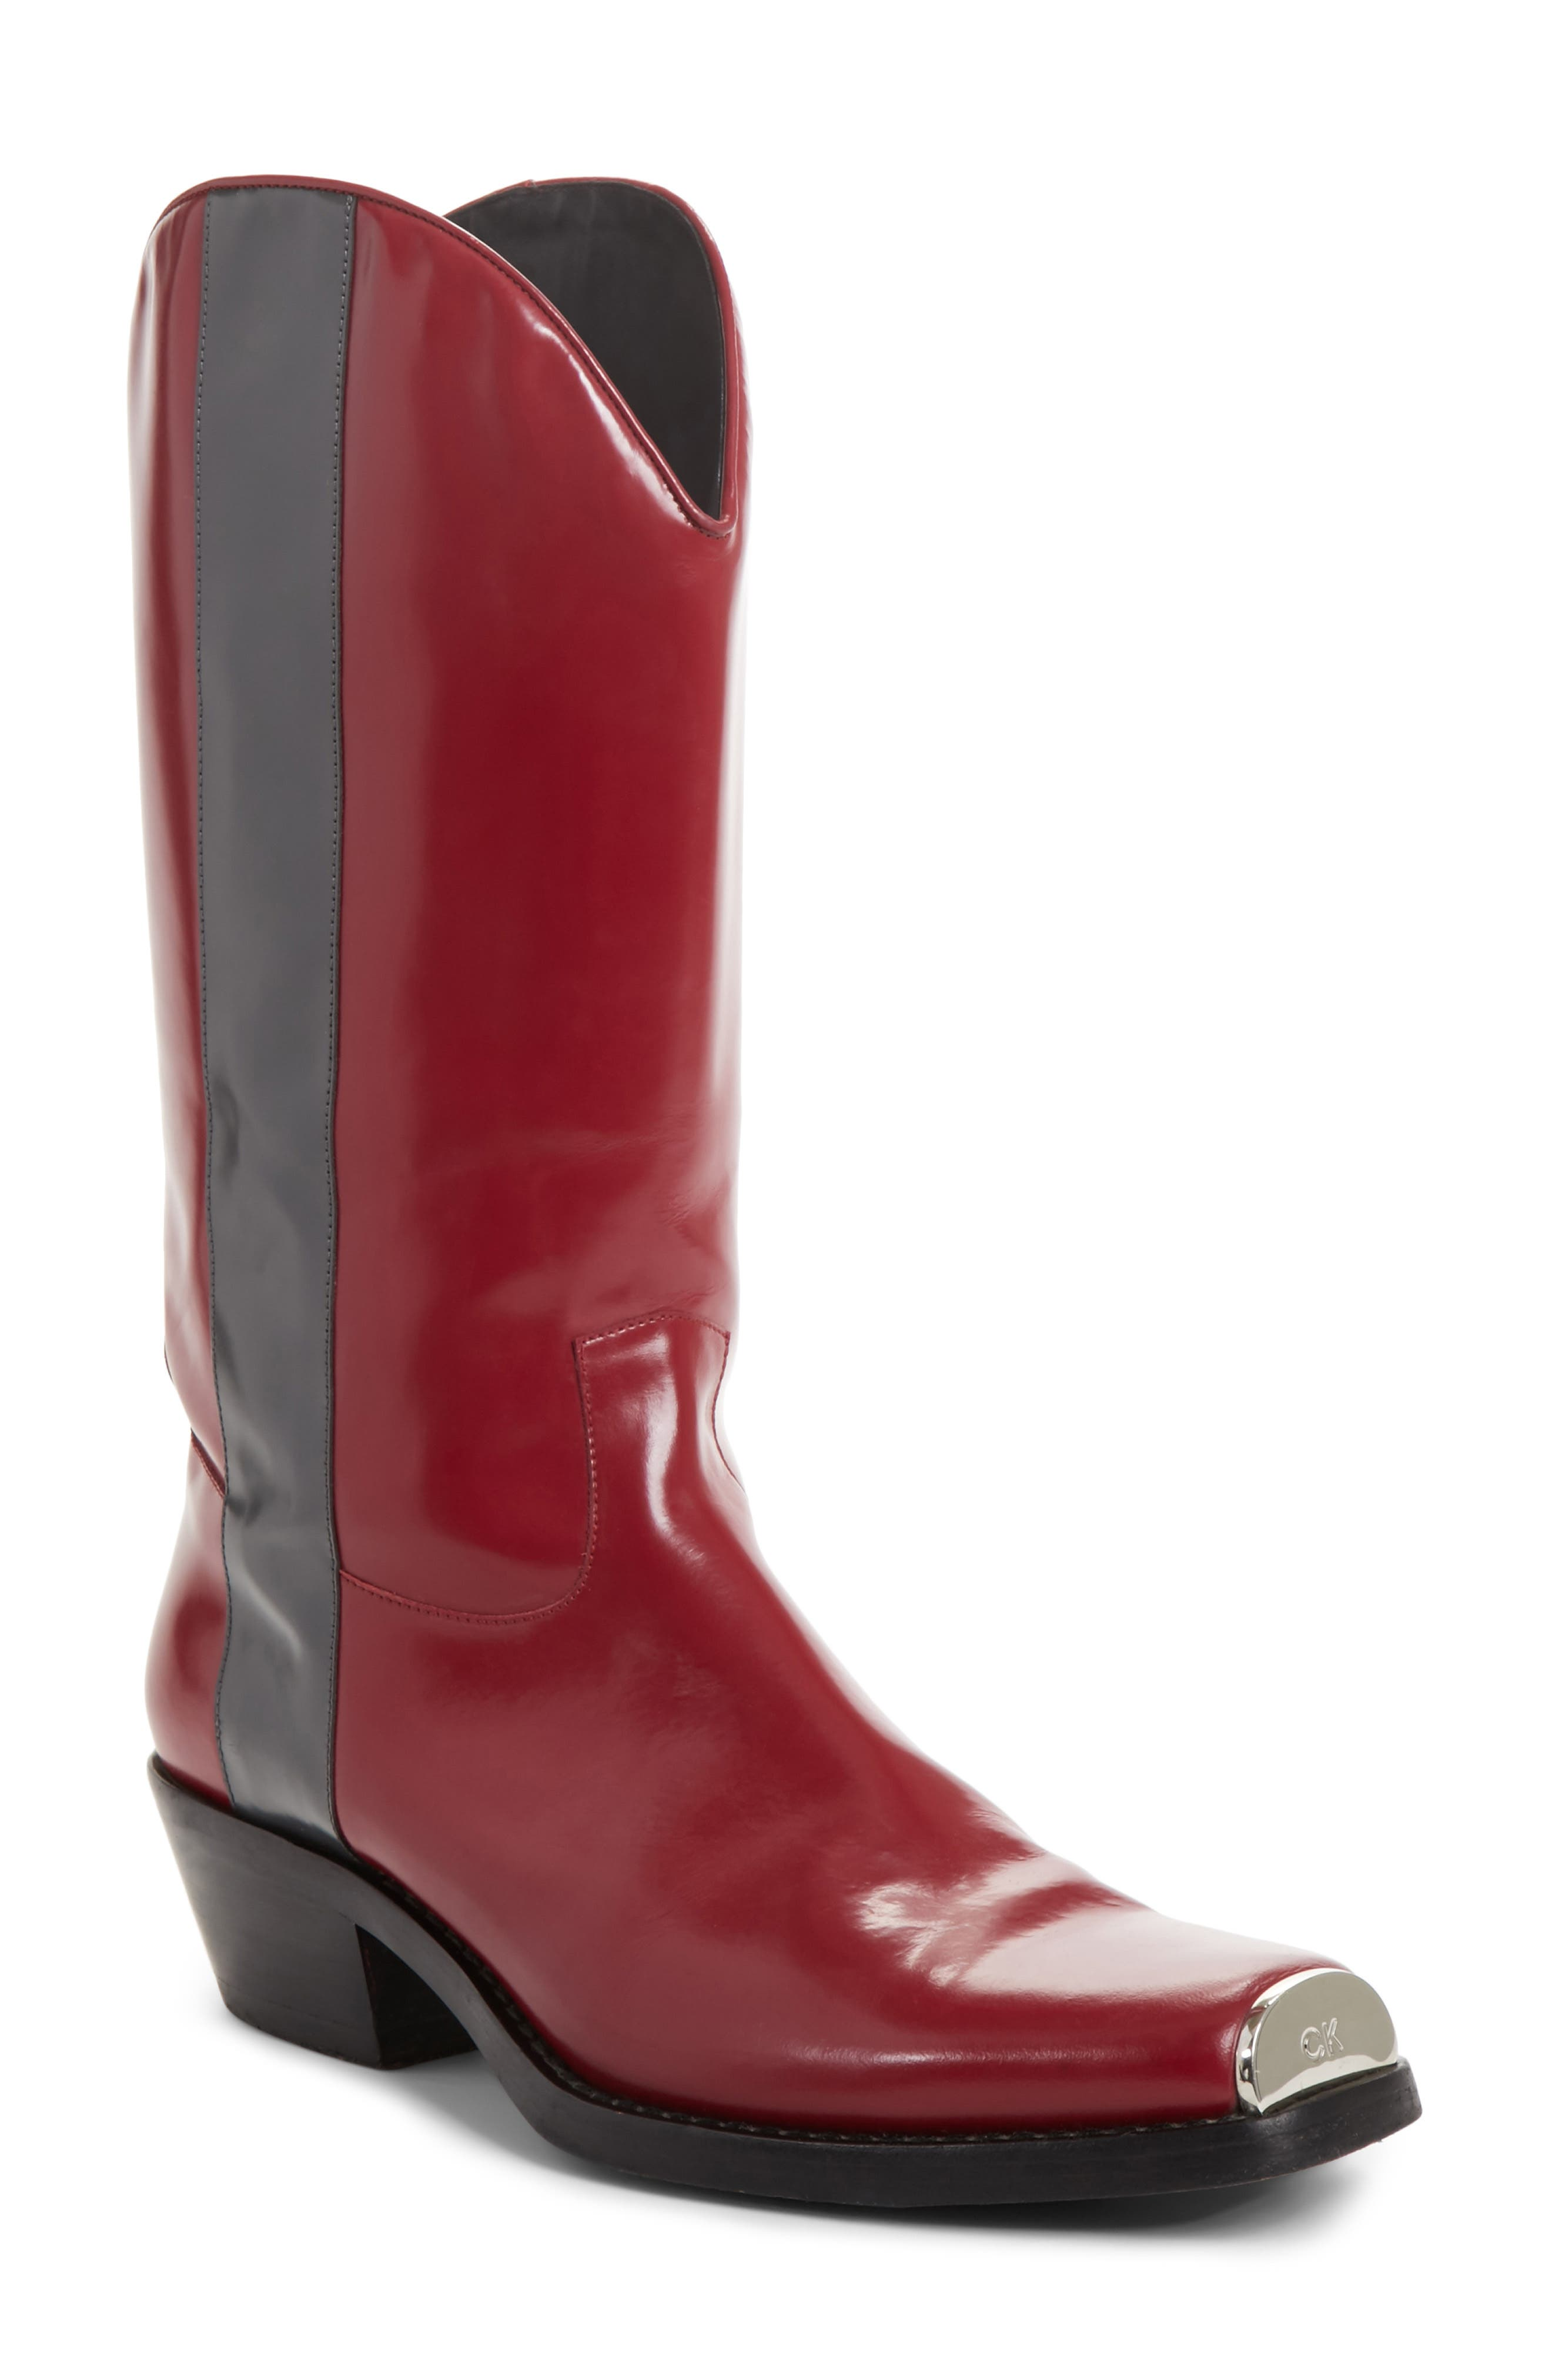 Chris Western Metal Tip Boot,                             Main thumbnail 1, color,                             Dark Red/ Anthracite Leather